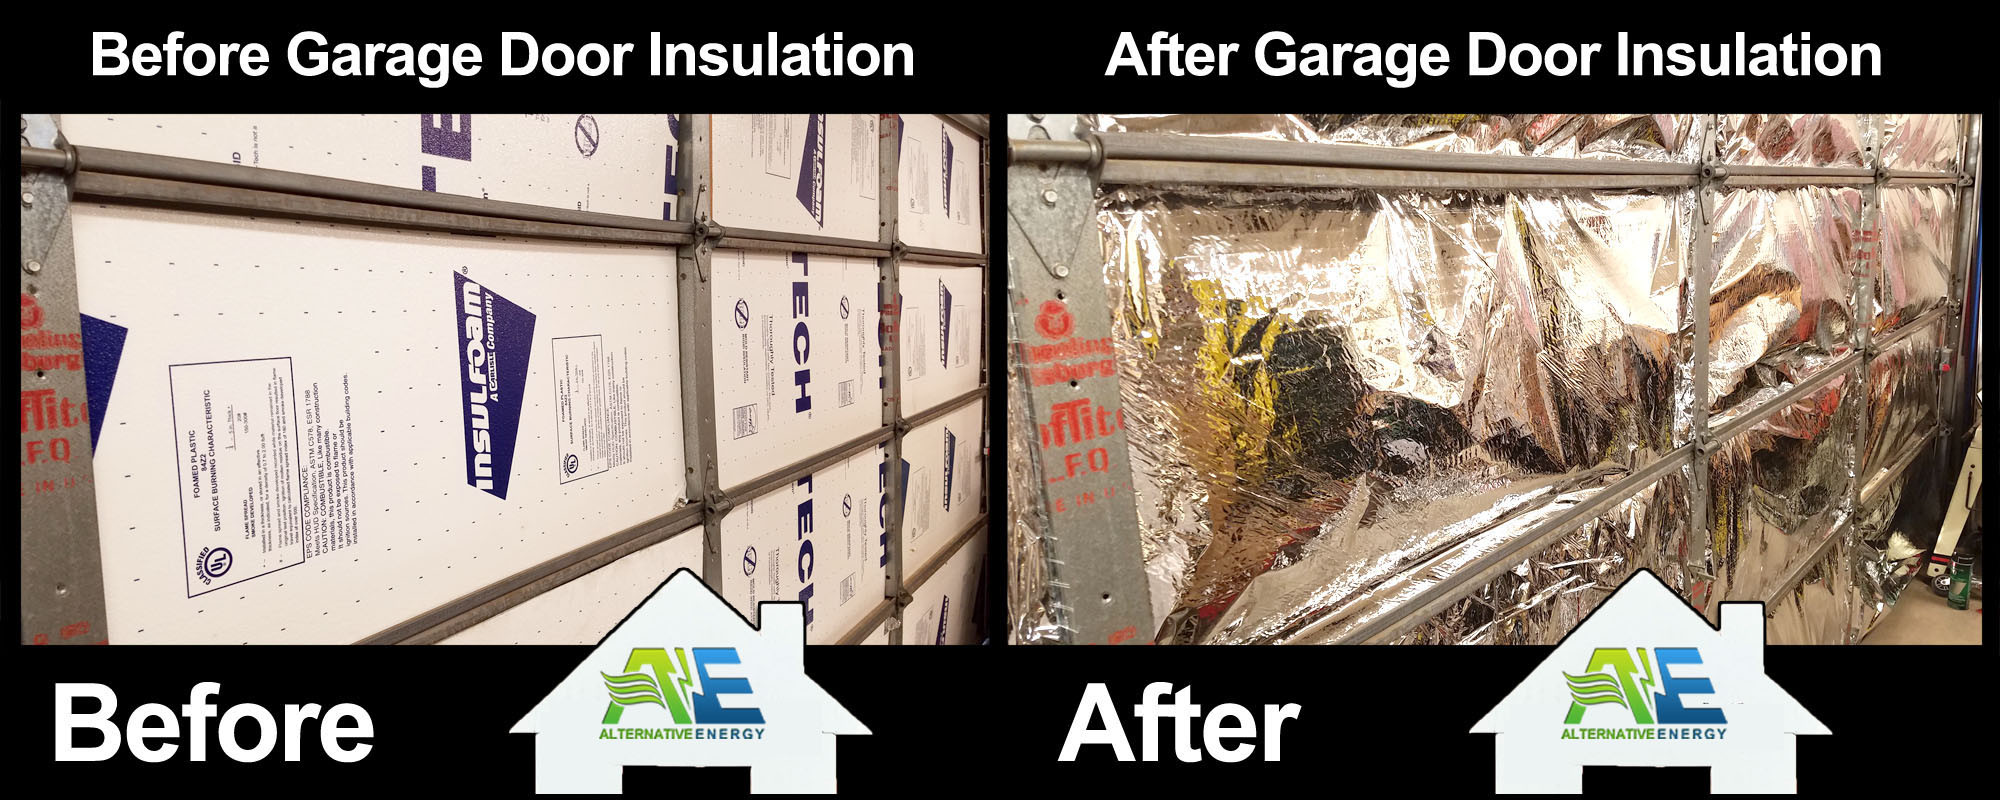 Garage Radiant Barrier - Garage Door Insulation